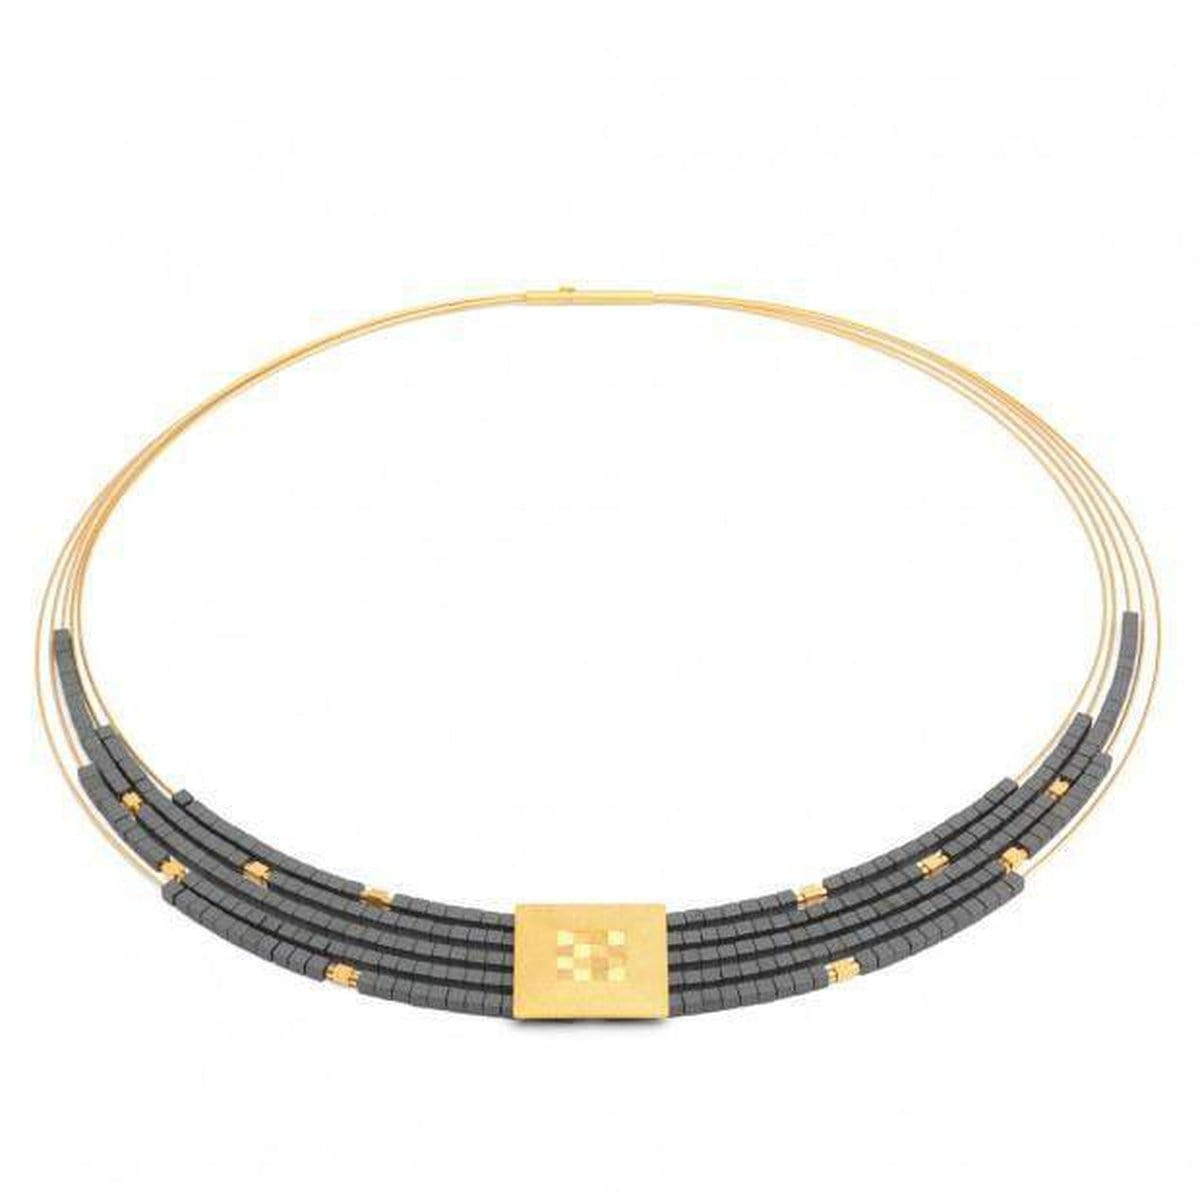 Felia Hematite Necklace - 85091276